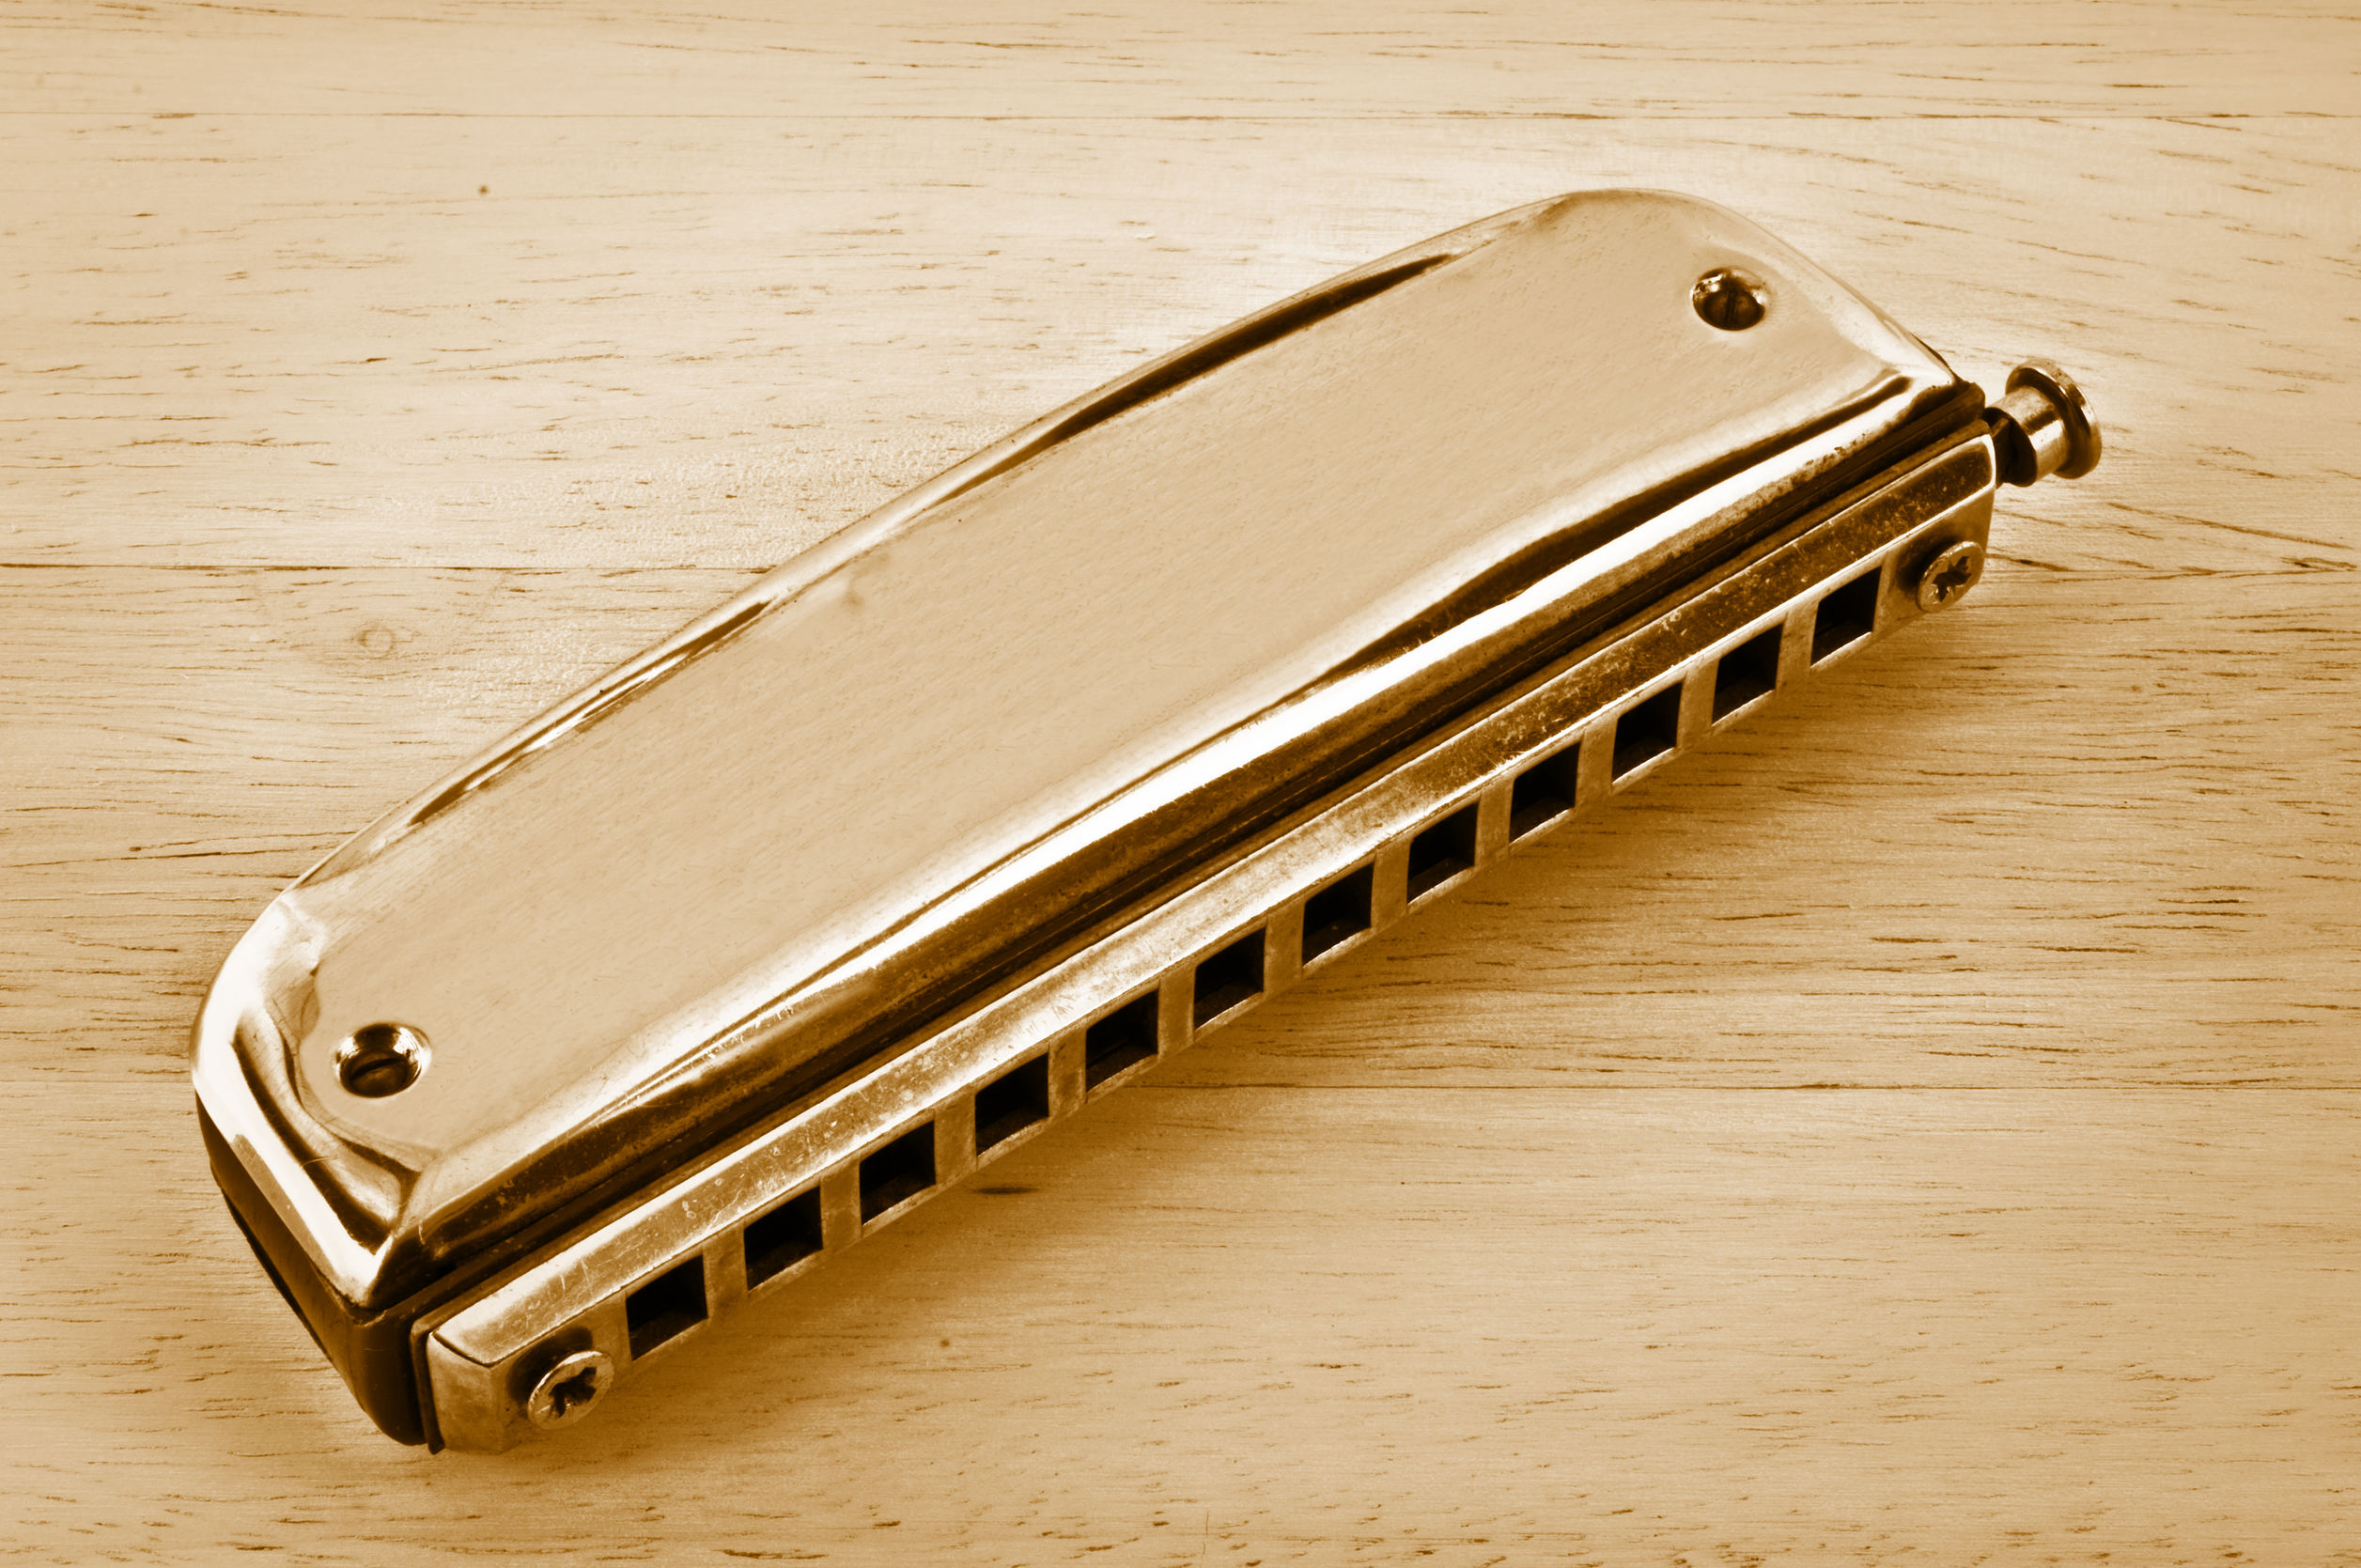 Best Harmonica 2020: Shopping Guide & Review